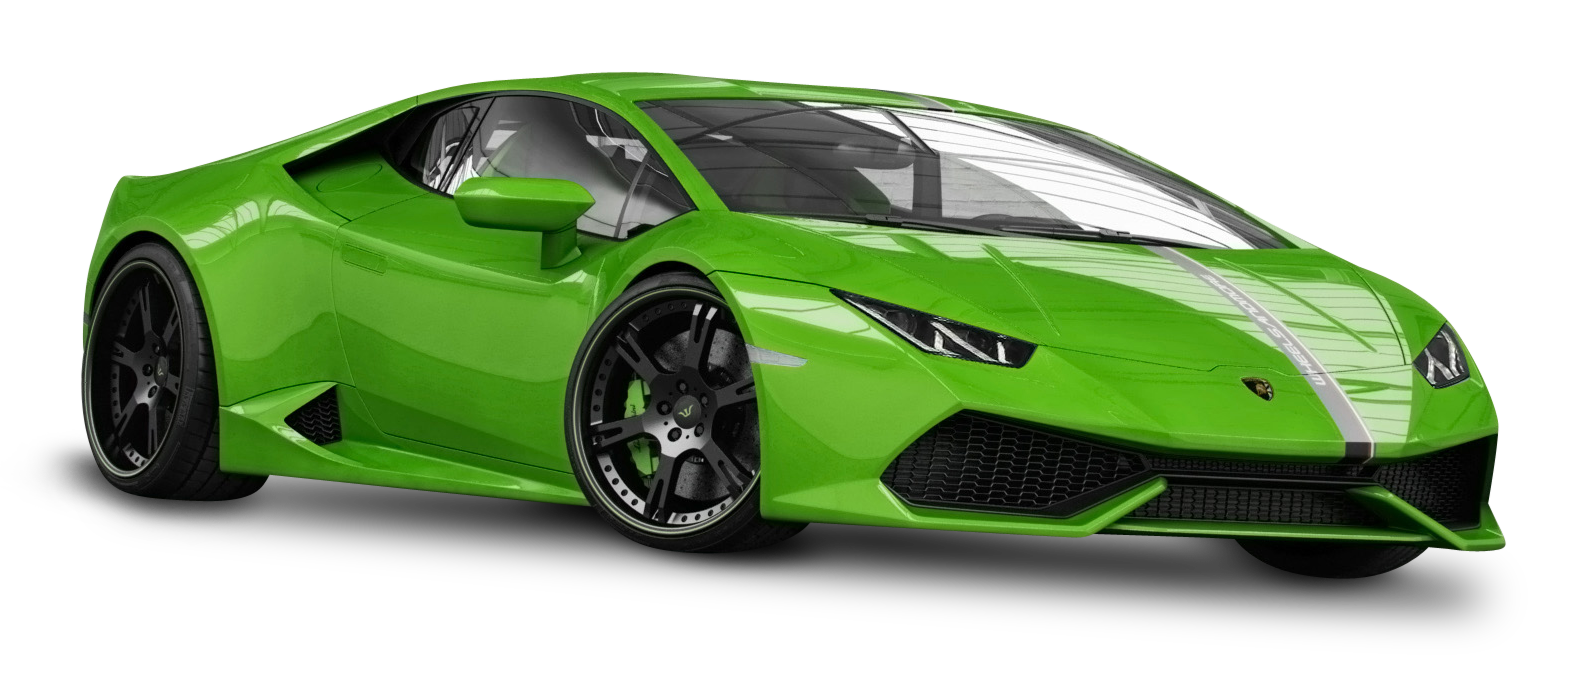 Lamborghini PNG Images Transparent Free Download.